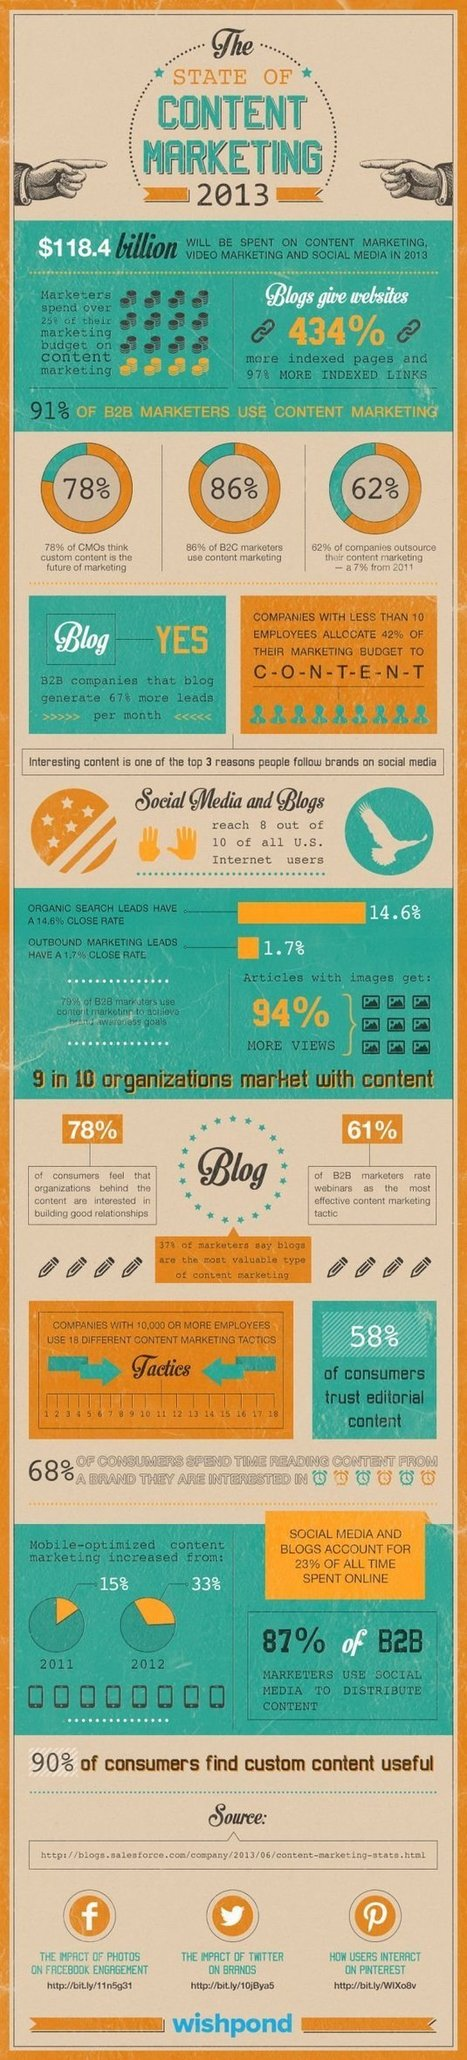 Infographic: 78% of CMOs think custom content is the future of marketing | Association Marketing: Digital + Direct | Scoop.it